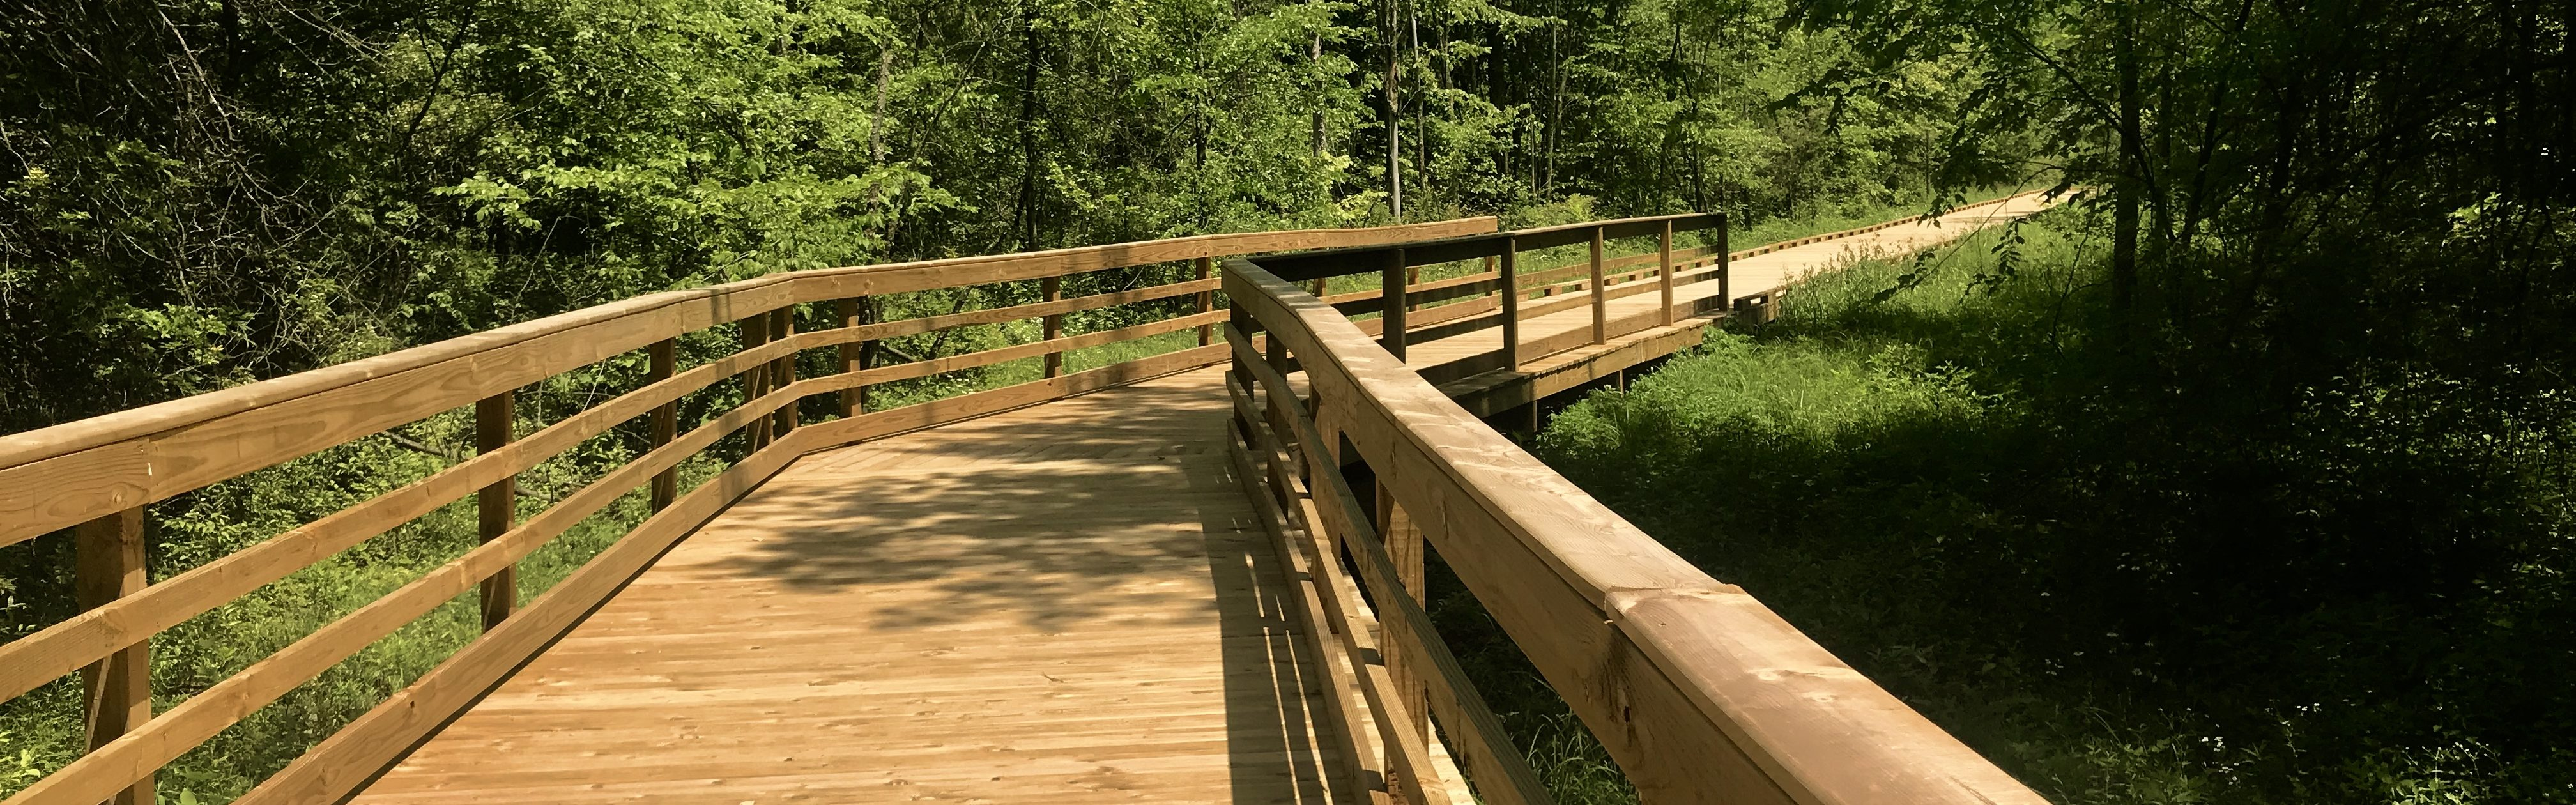 VISIT THE BOARDWALK NATURE TRAIL